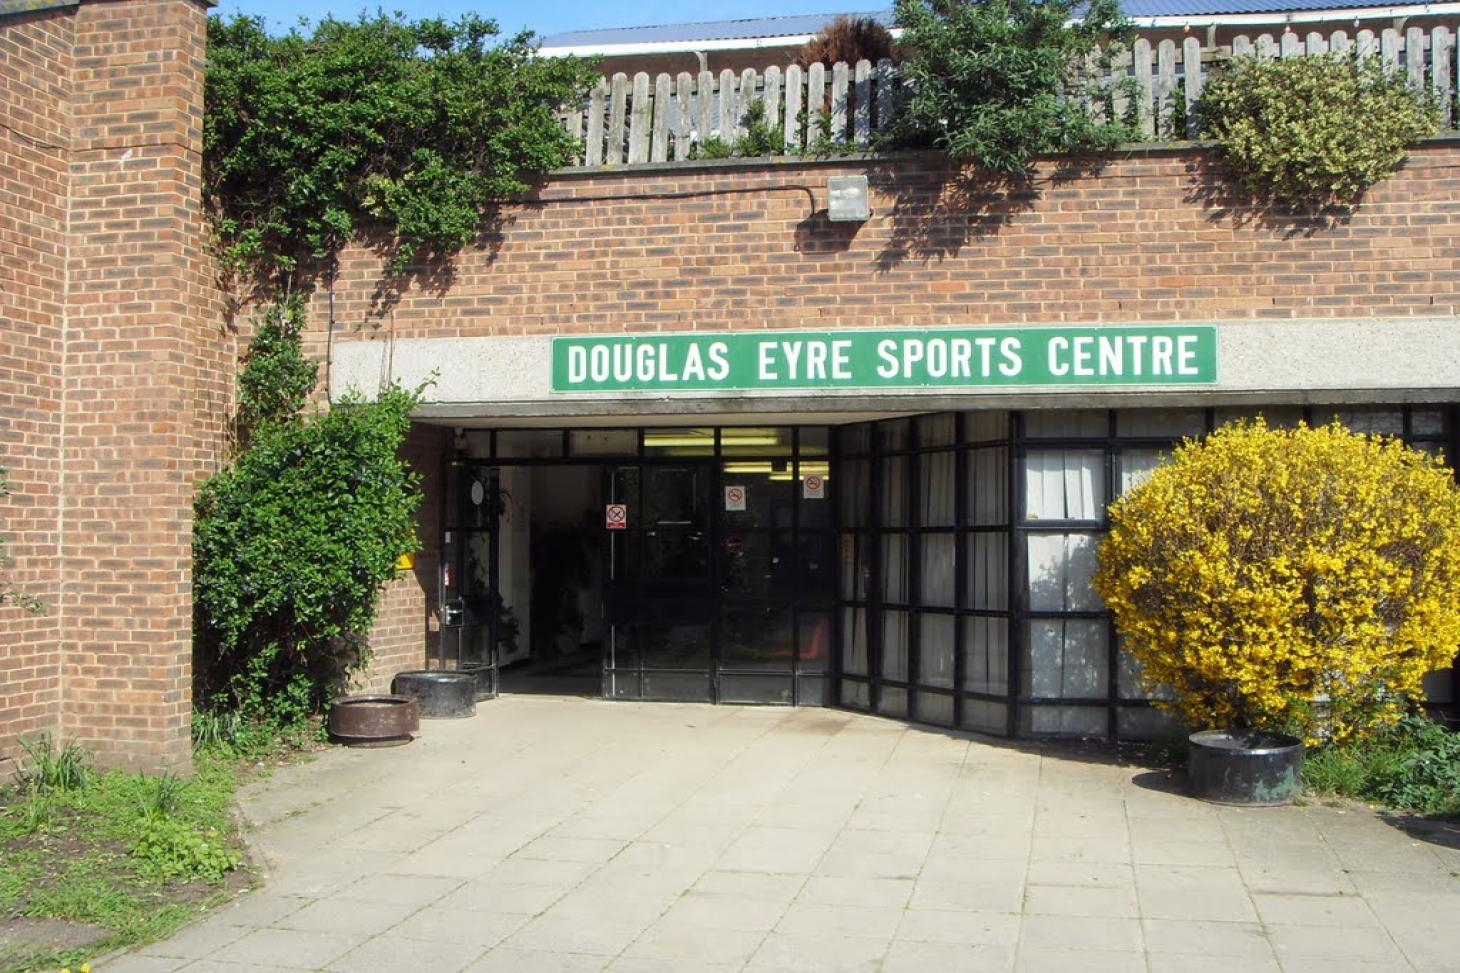 Douglas Eyre Sports Centre 11 a side | Grass football pitch